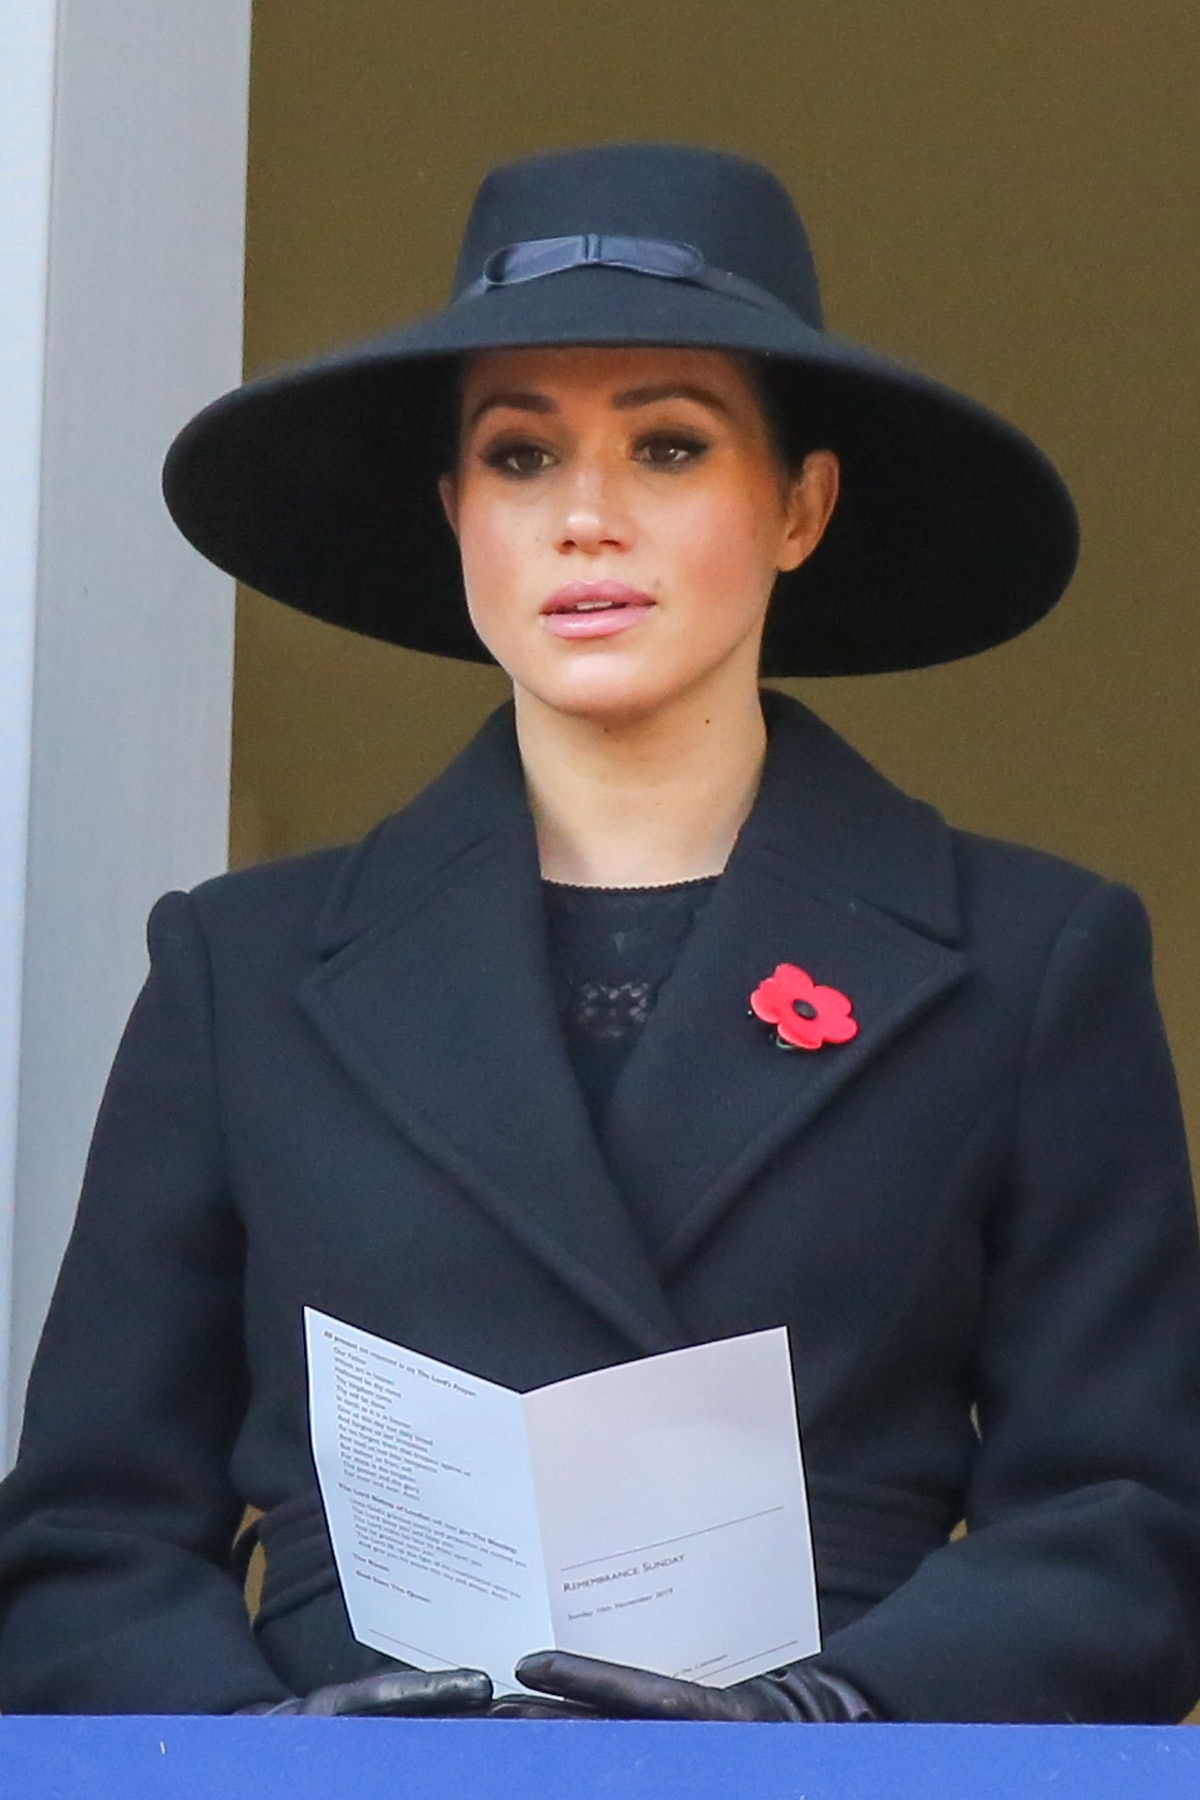 Here, Markle is shown sitting while wearing an all black ensemble consisting of a large hat, coat, a...